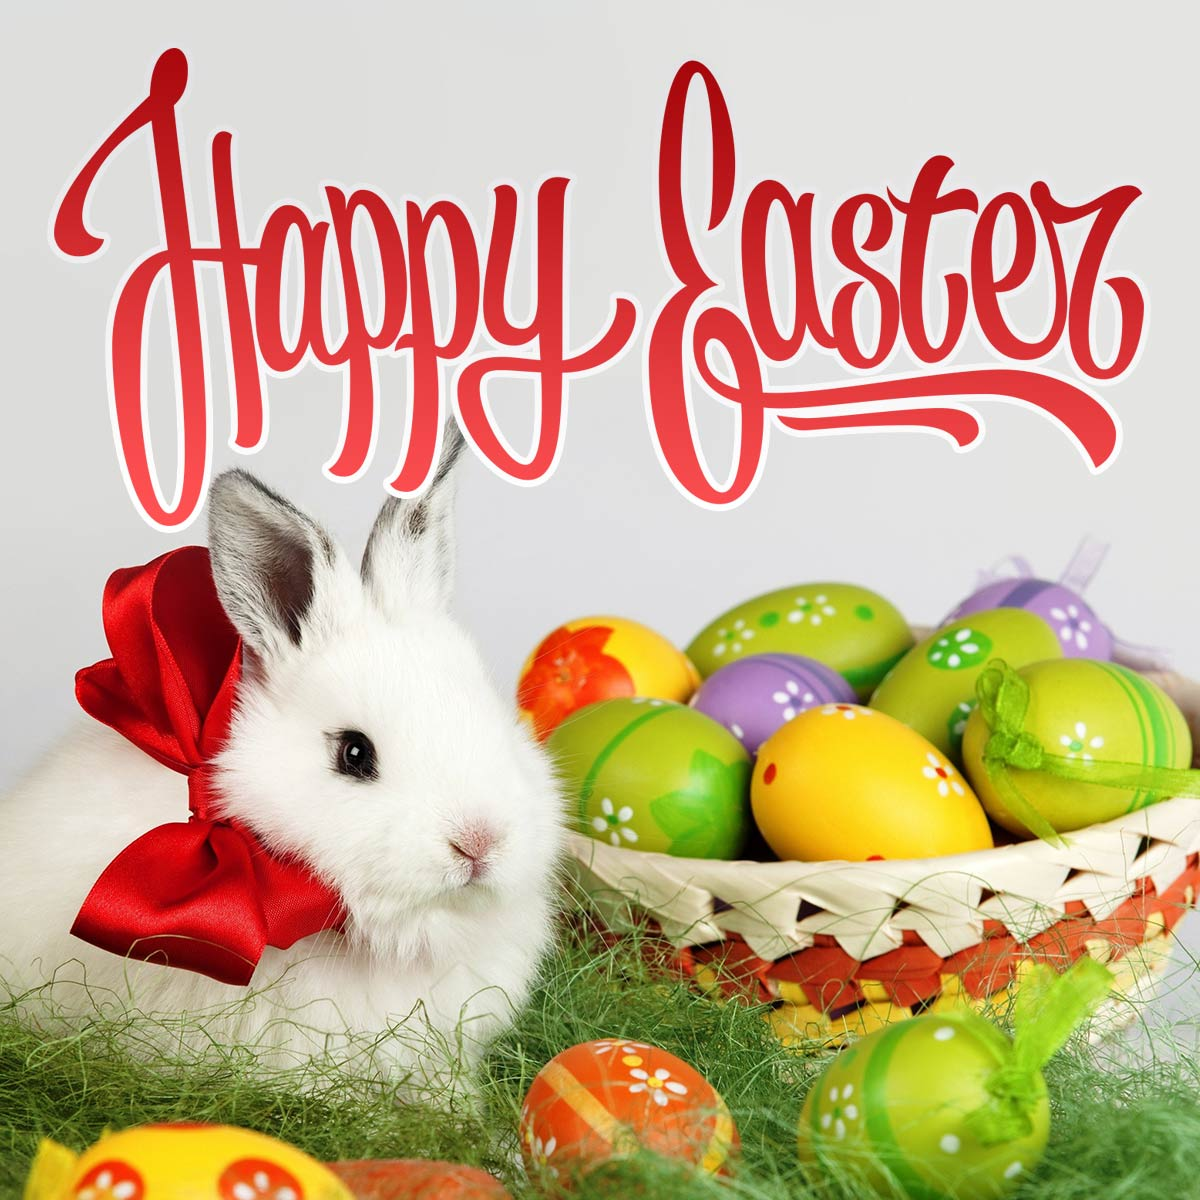 Cute Bunny and Painted Easter Eggs Greeting Card